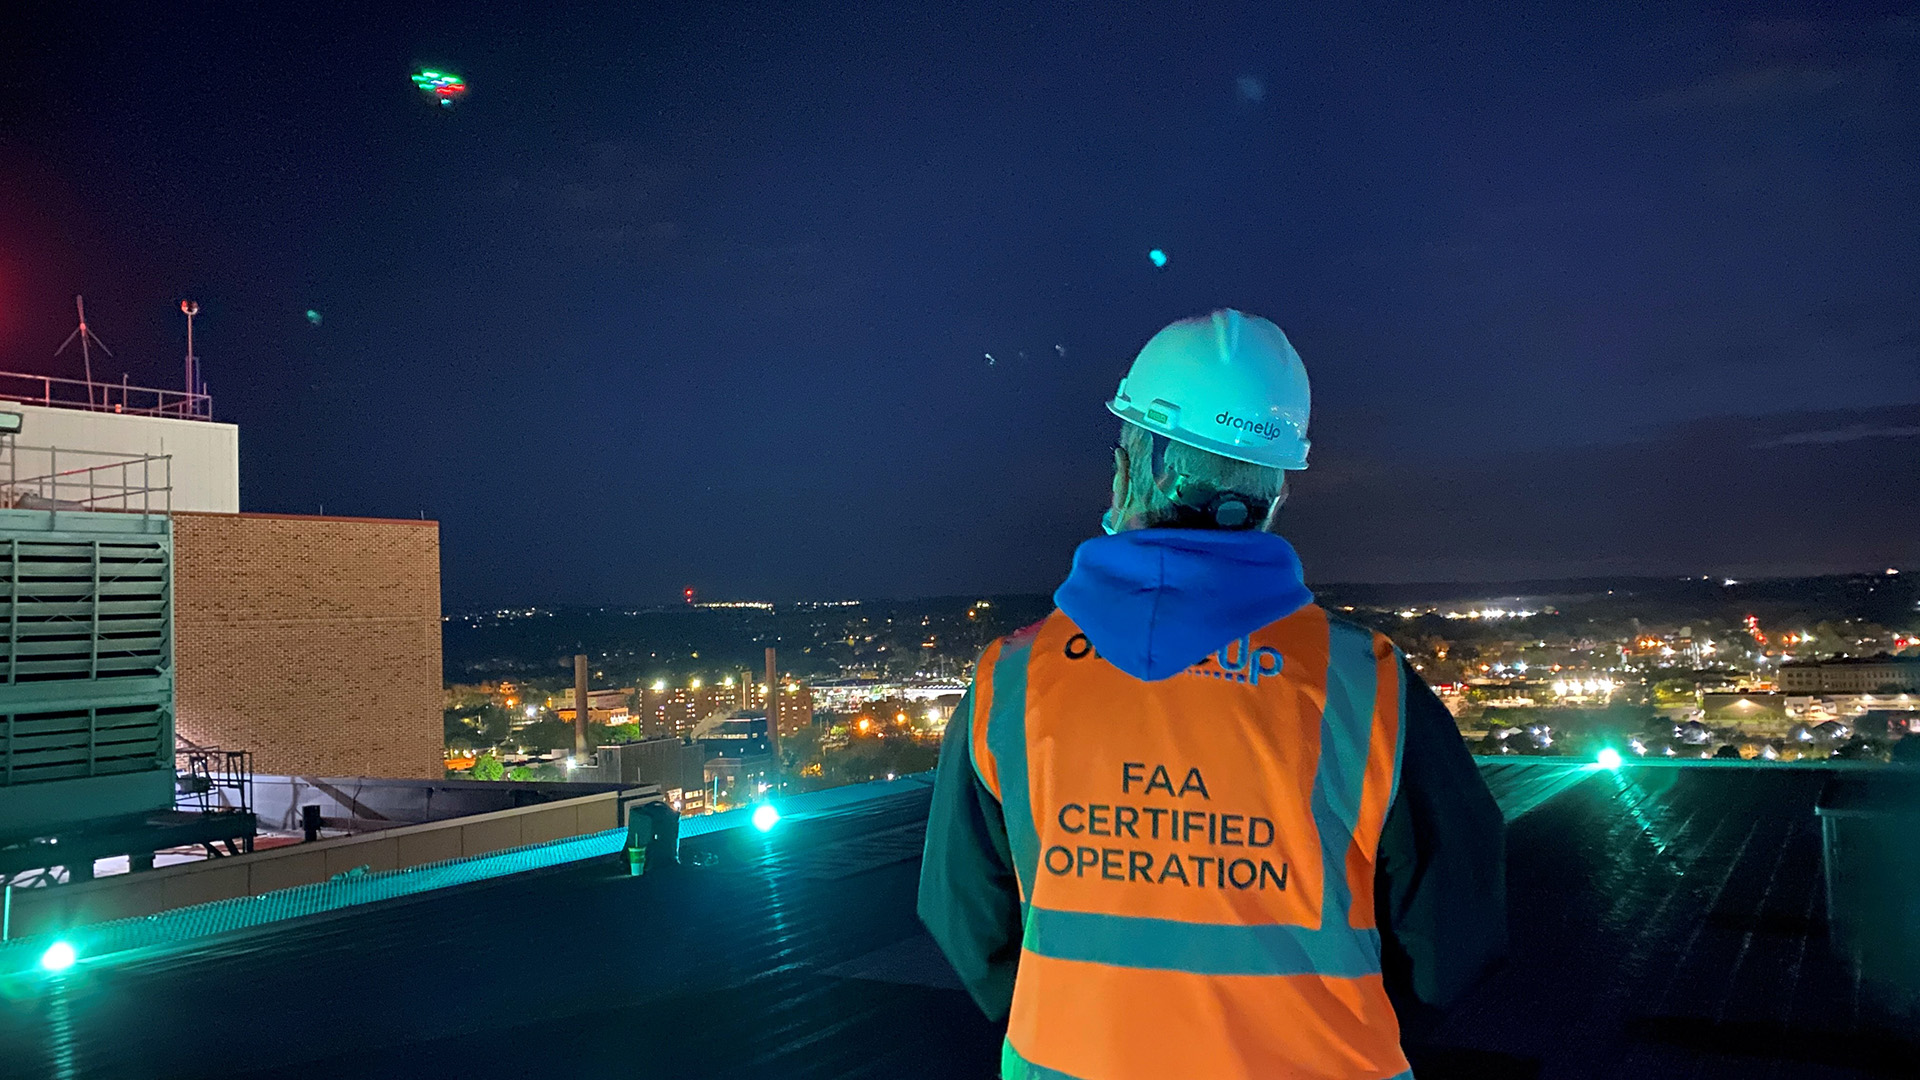 Drone Medical Delivery at Night